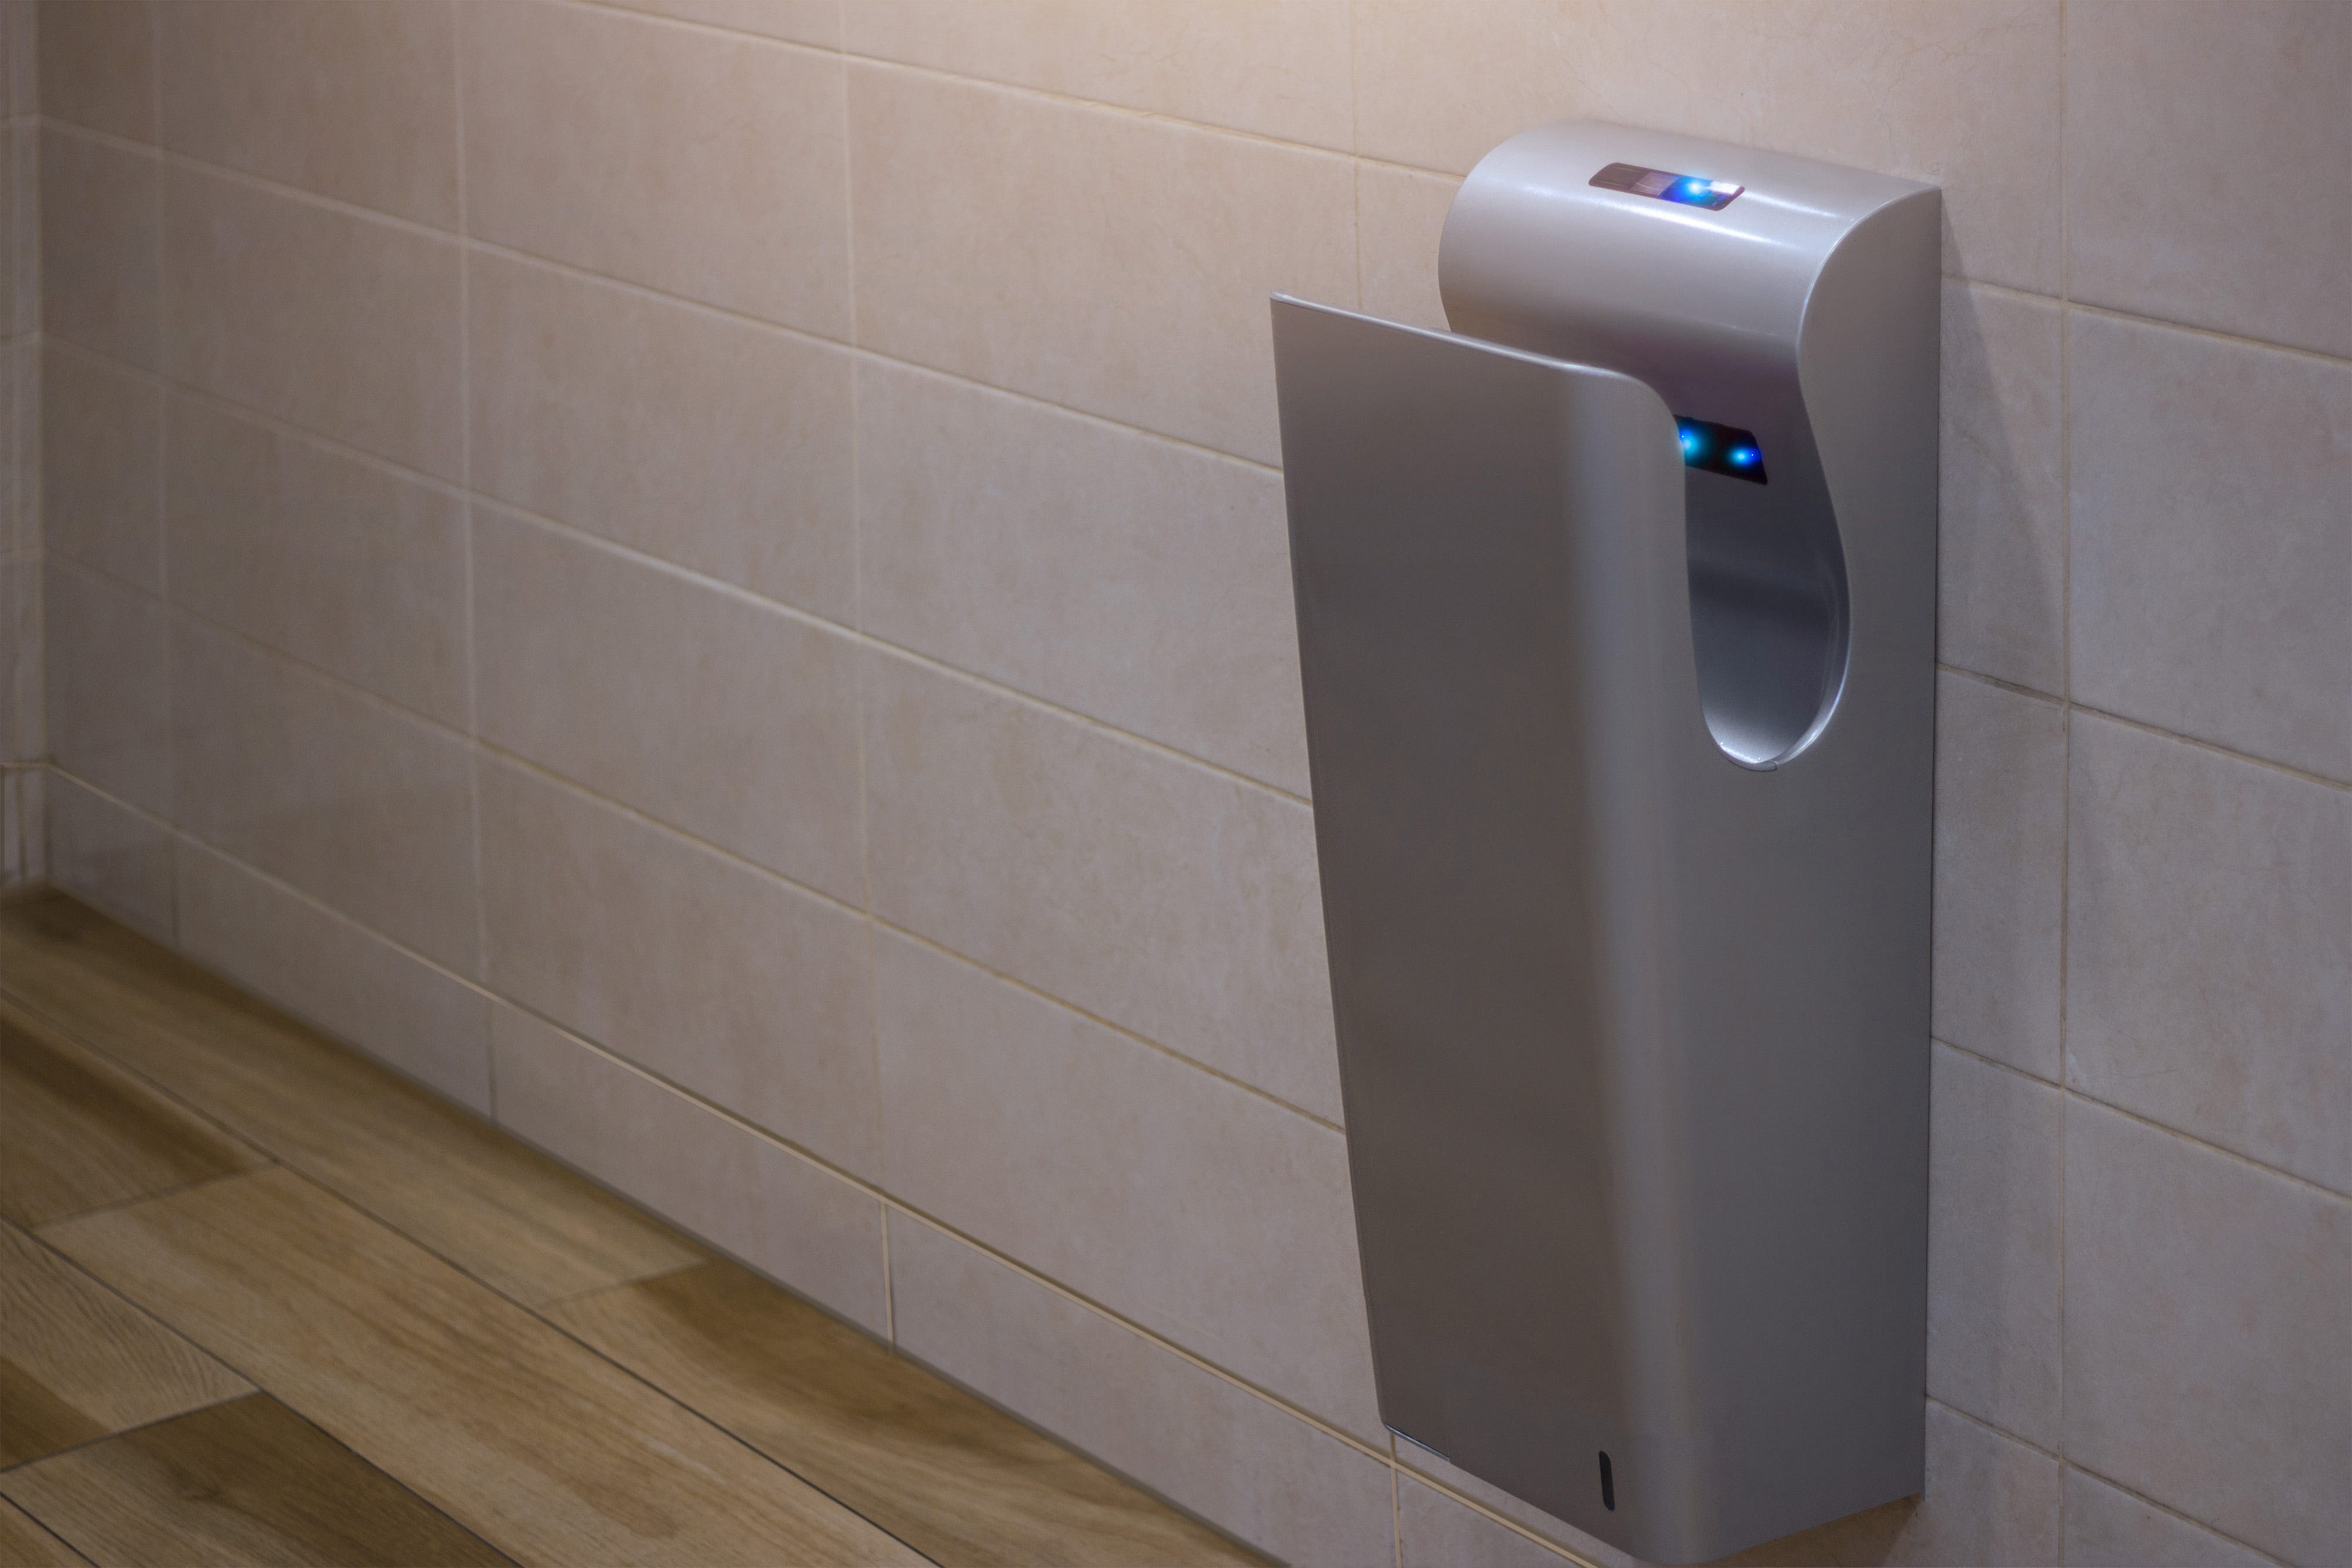 Ban jet air hand dryers? Scientists urge hospitals to avoid them, citing increased germs